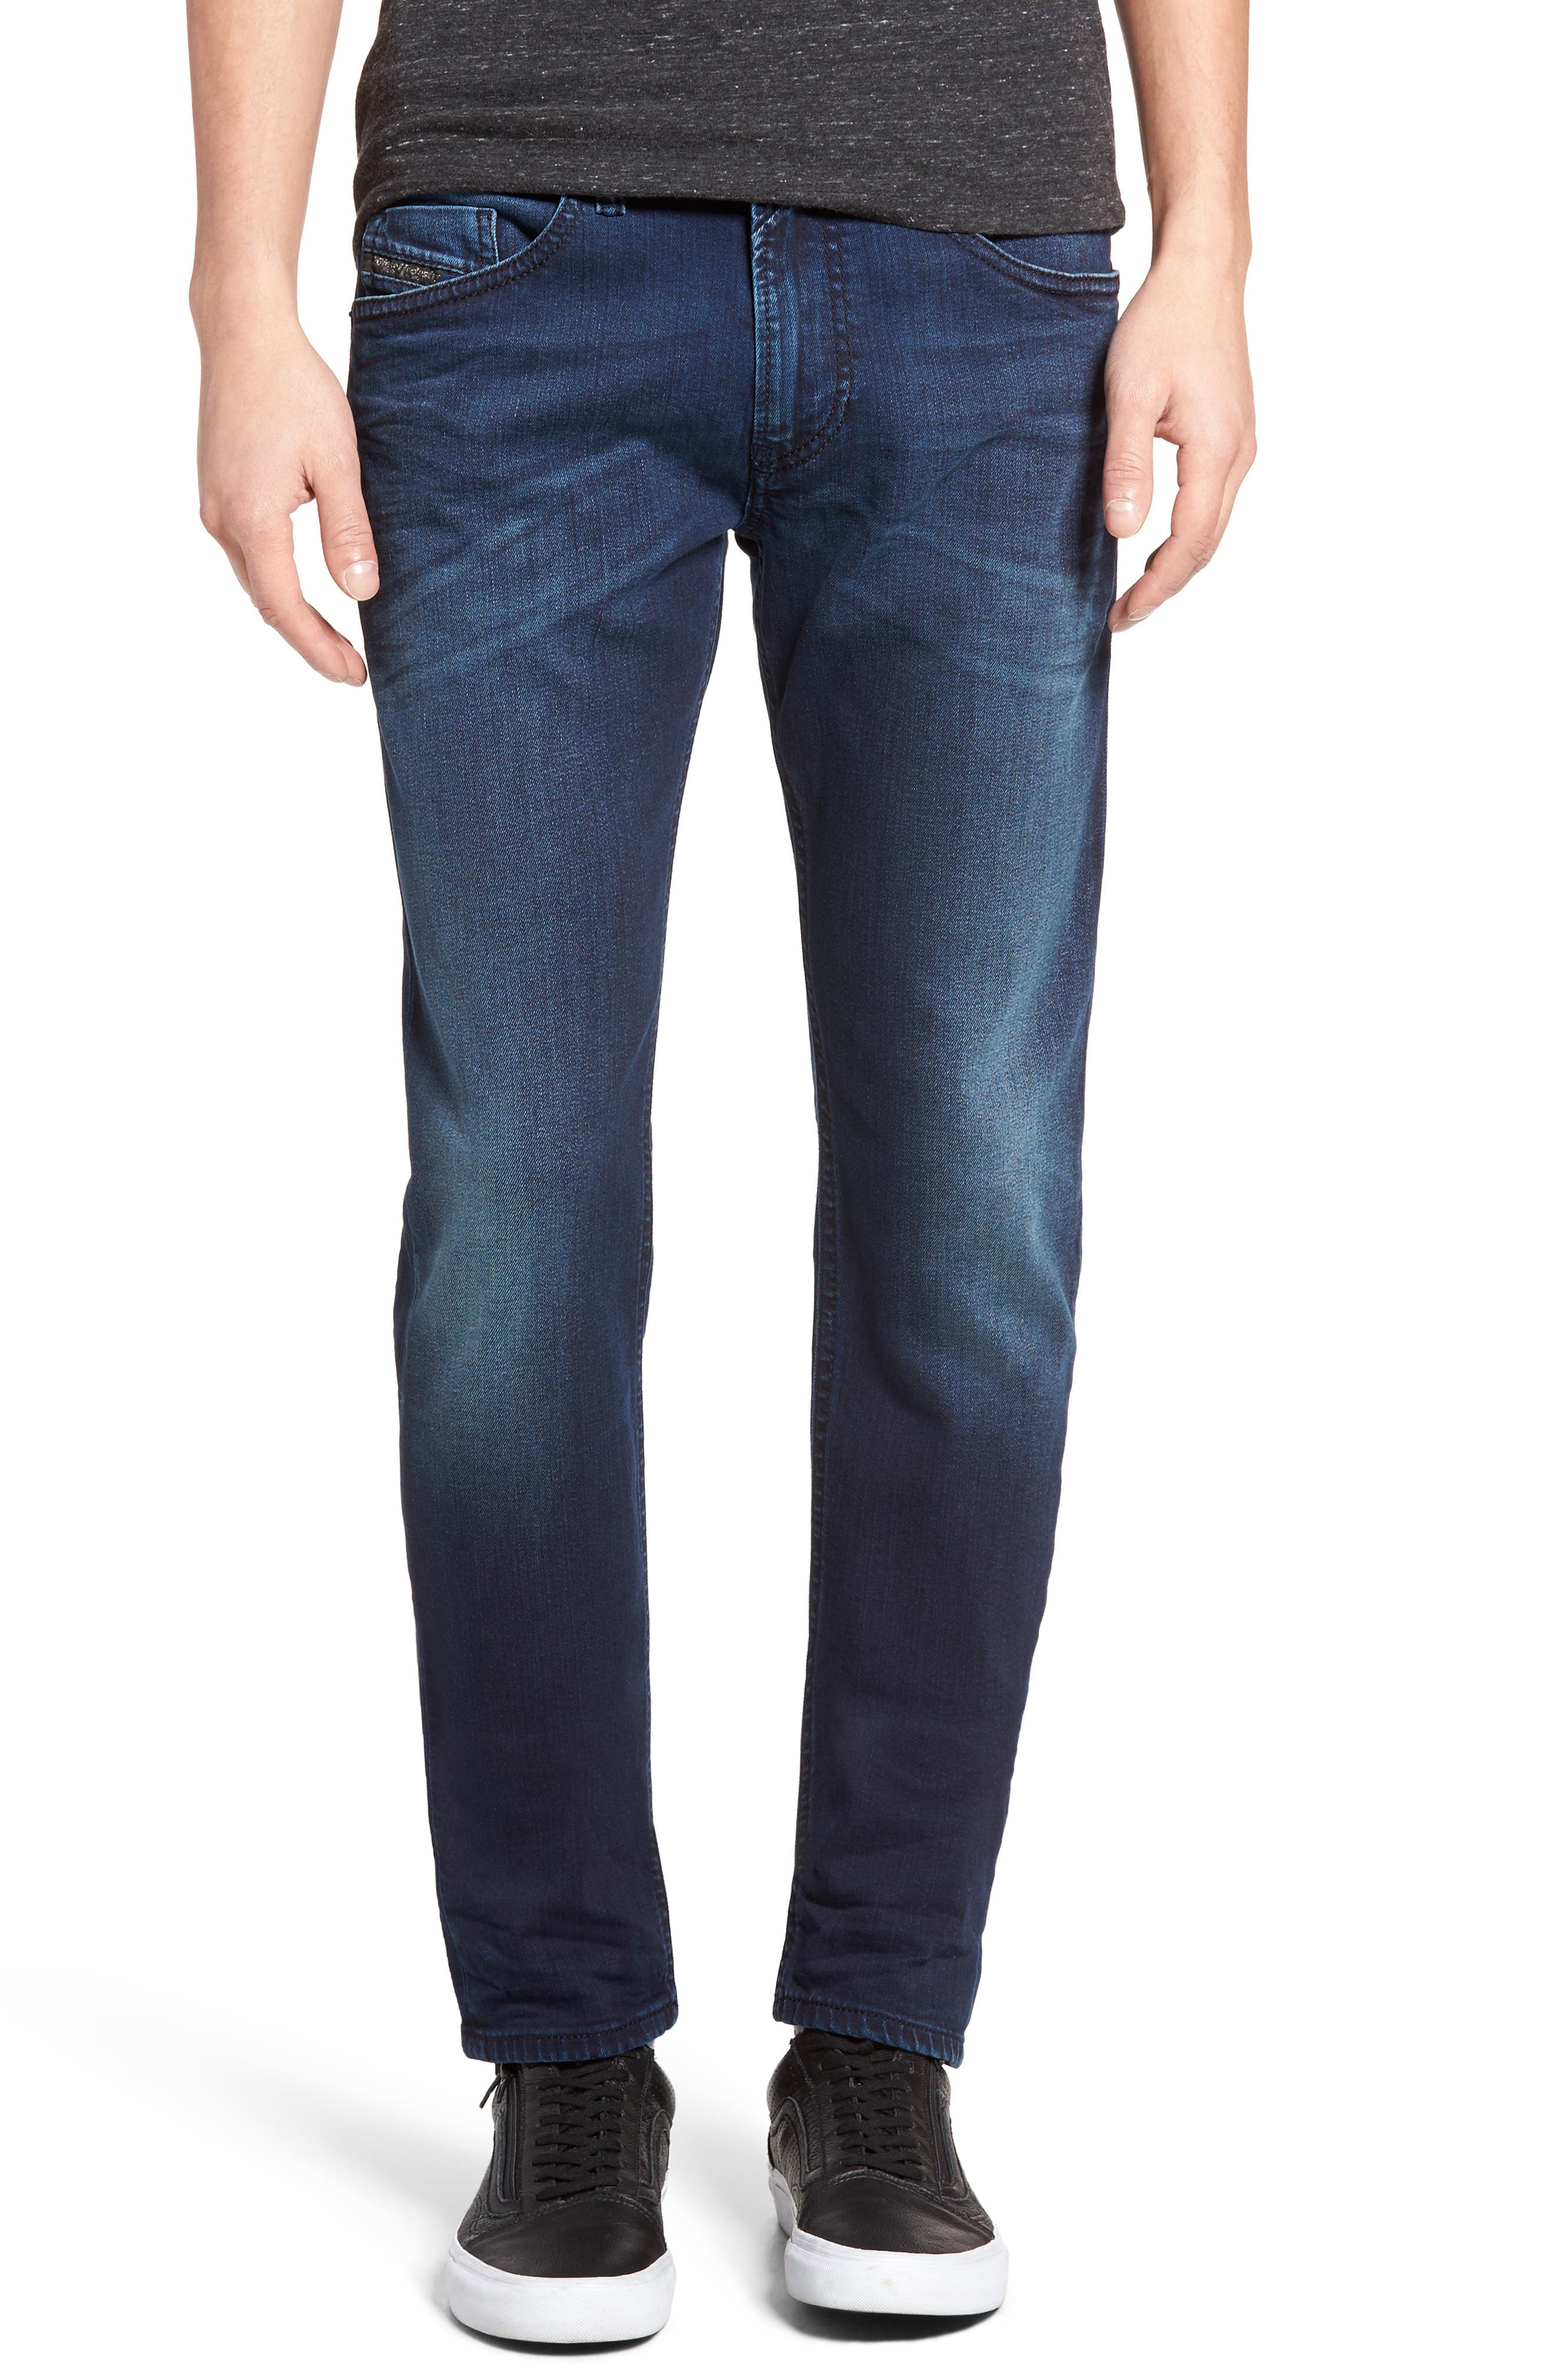 Thommer Skinny Fit Jeans,                             Main thumbnail 1, color,                             084Bv